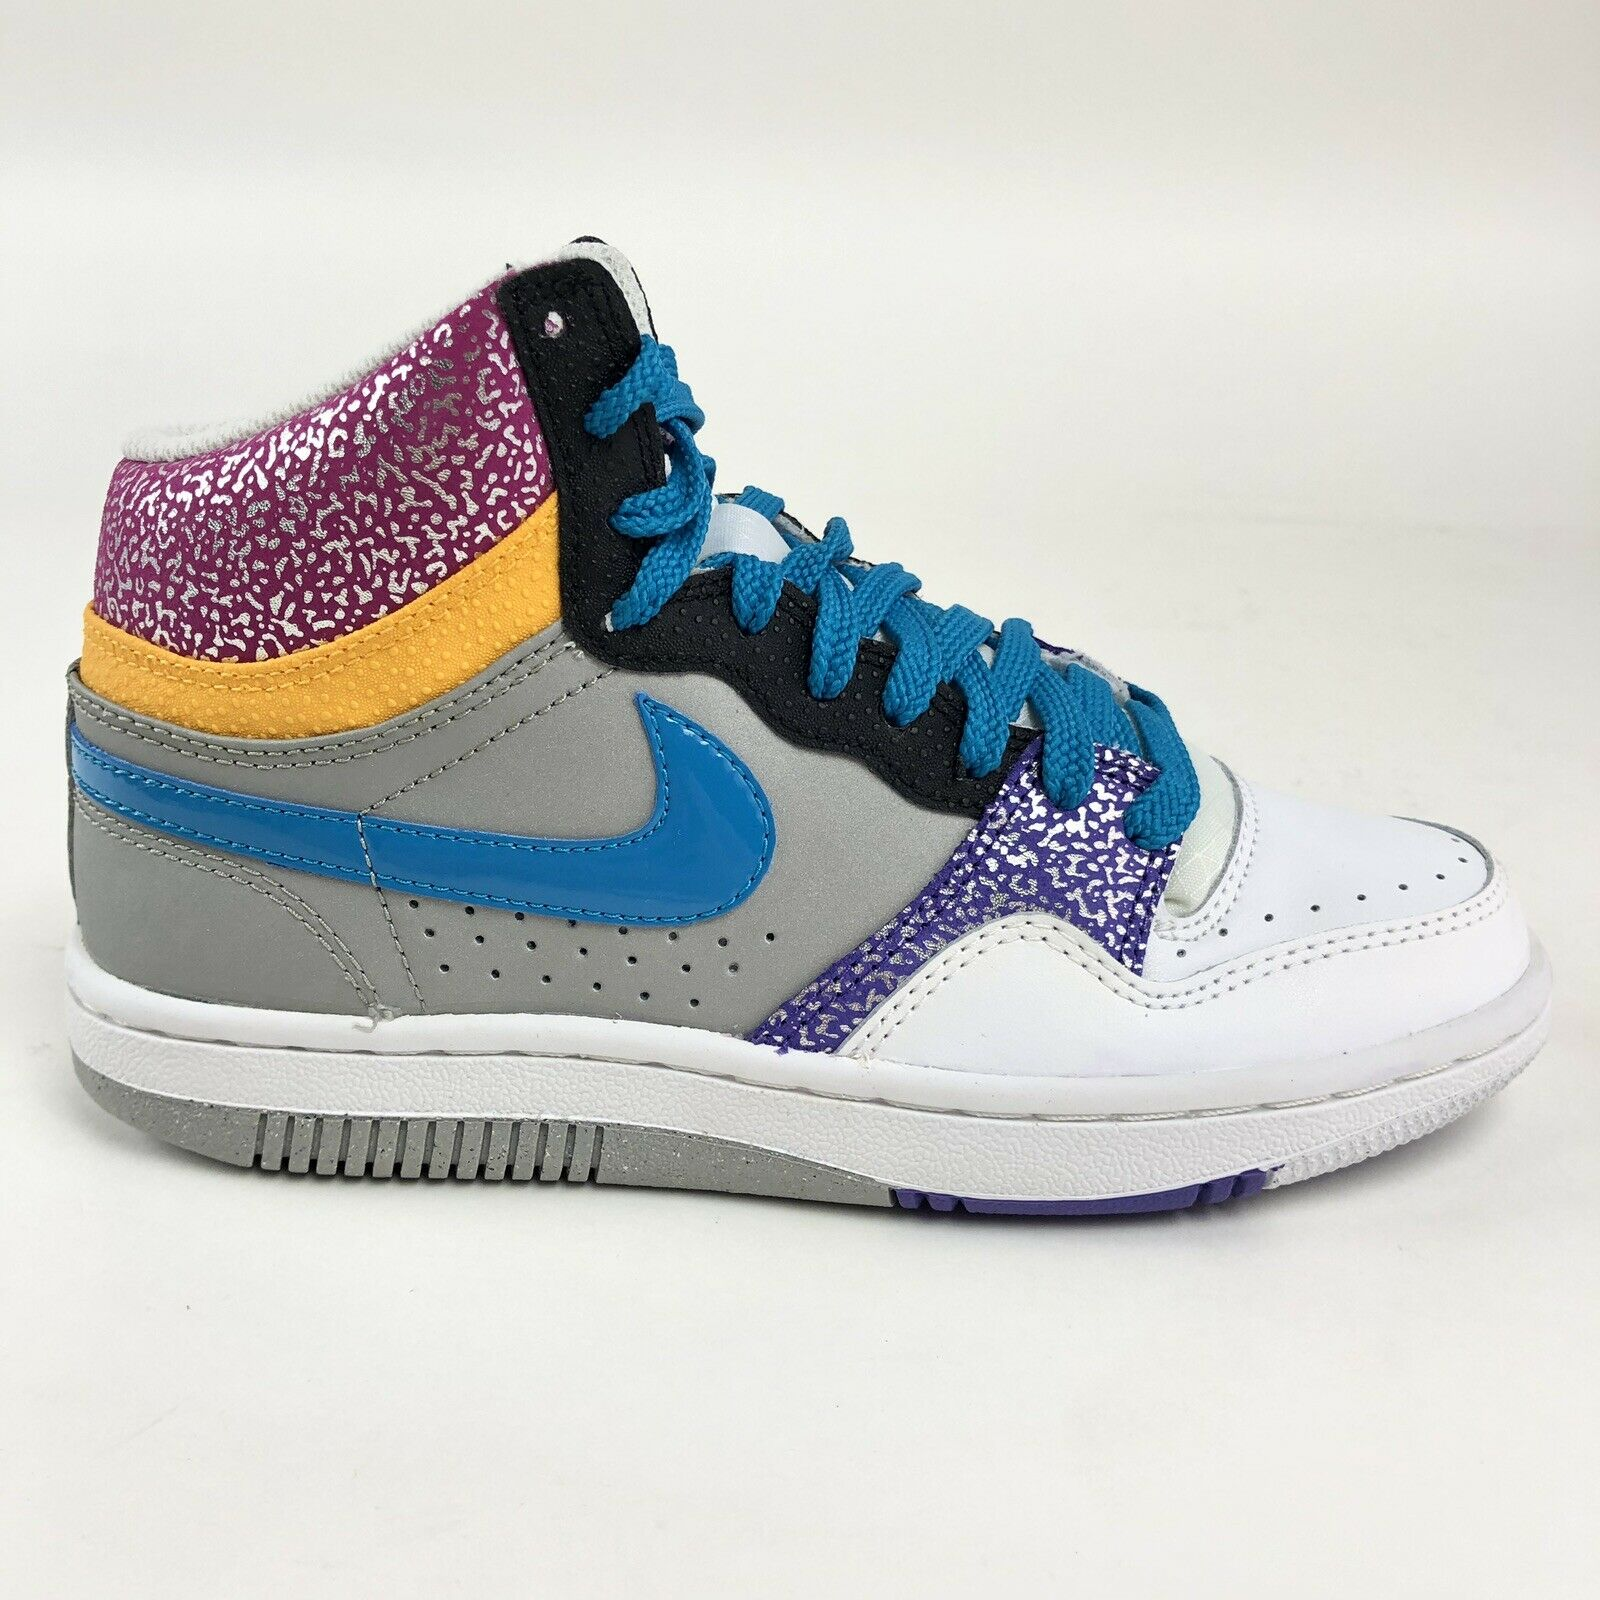 Nike Womens Court Force High Pink Purple bluee Size 7.5 shoes Retro 316117-041